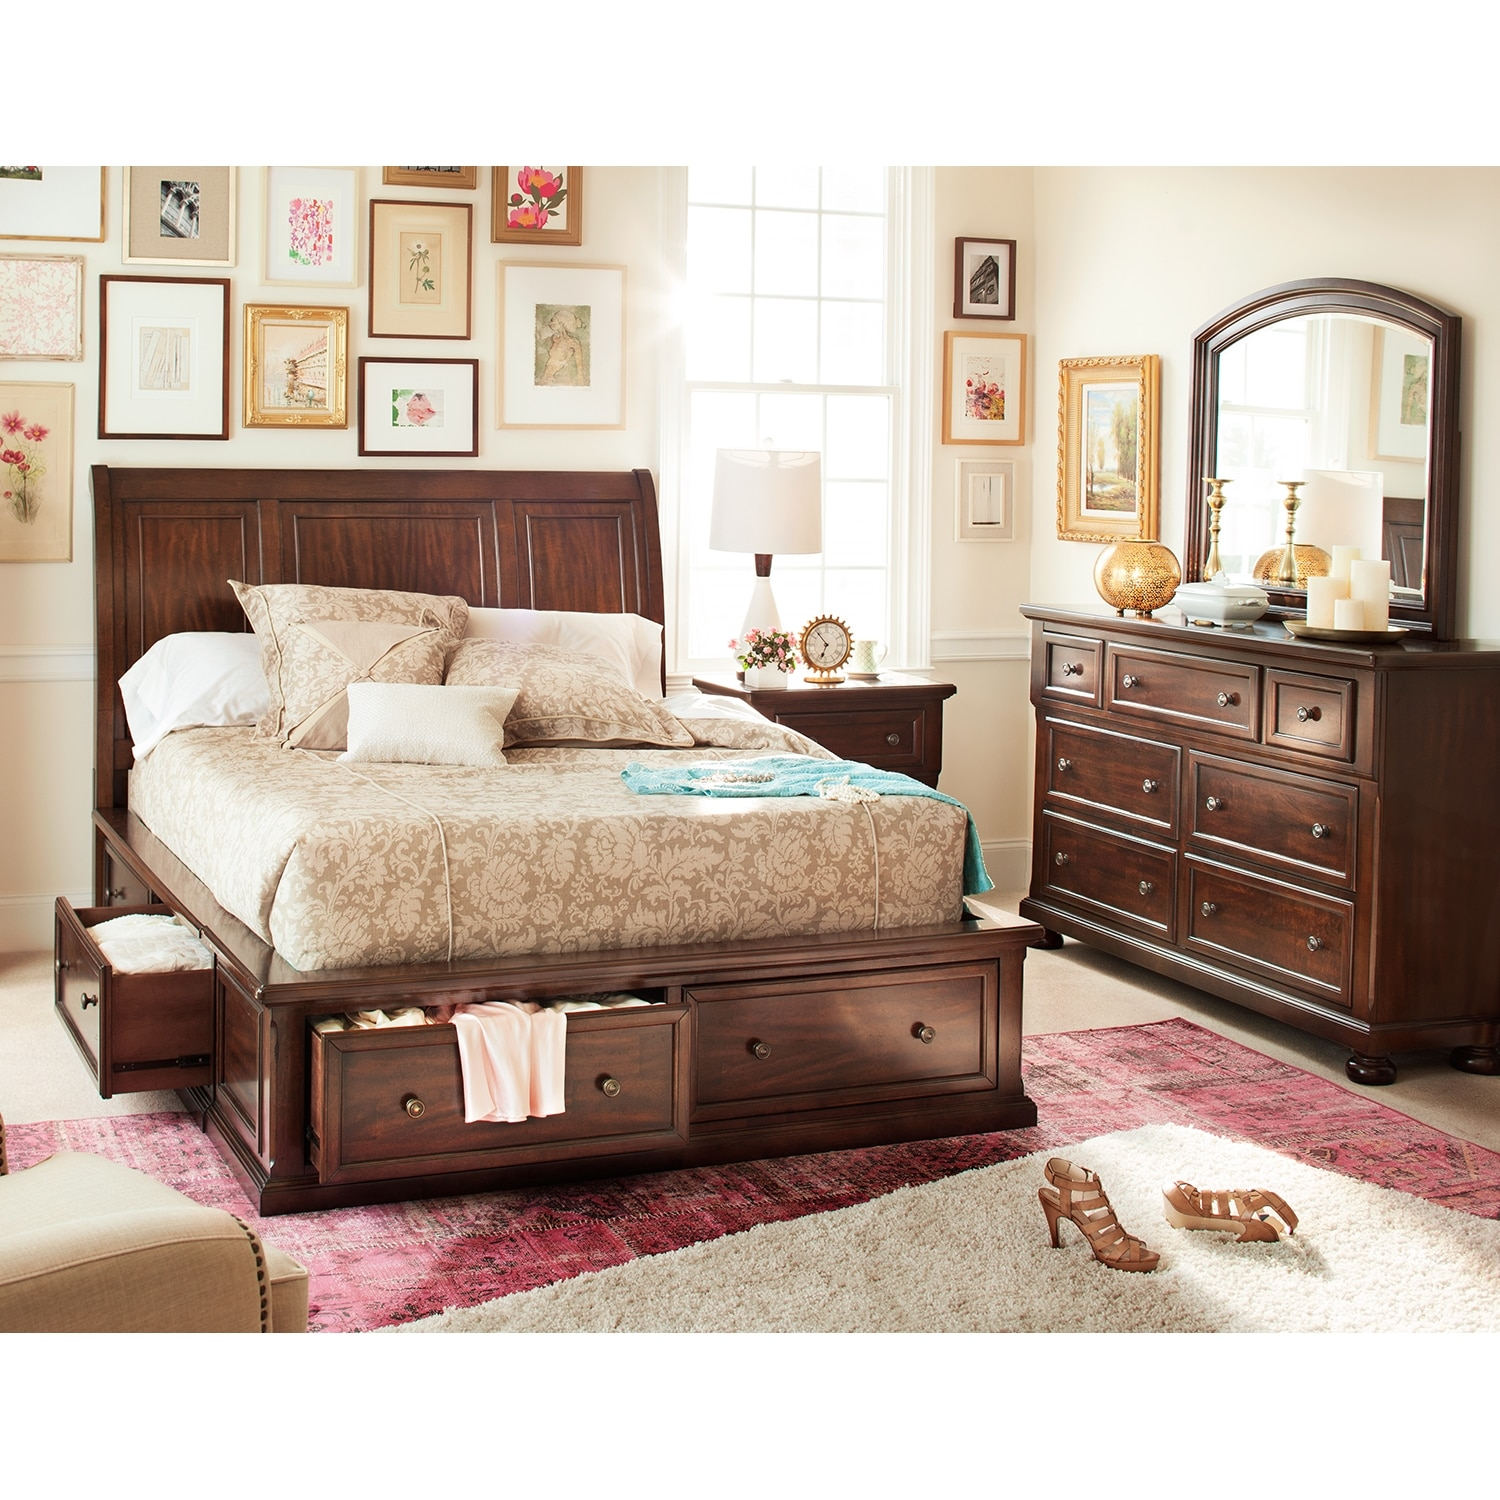 Ashley Furniture Bedroom Sets Images Ideas